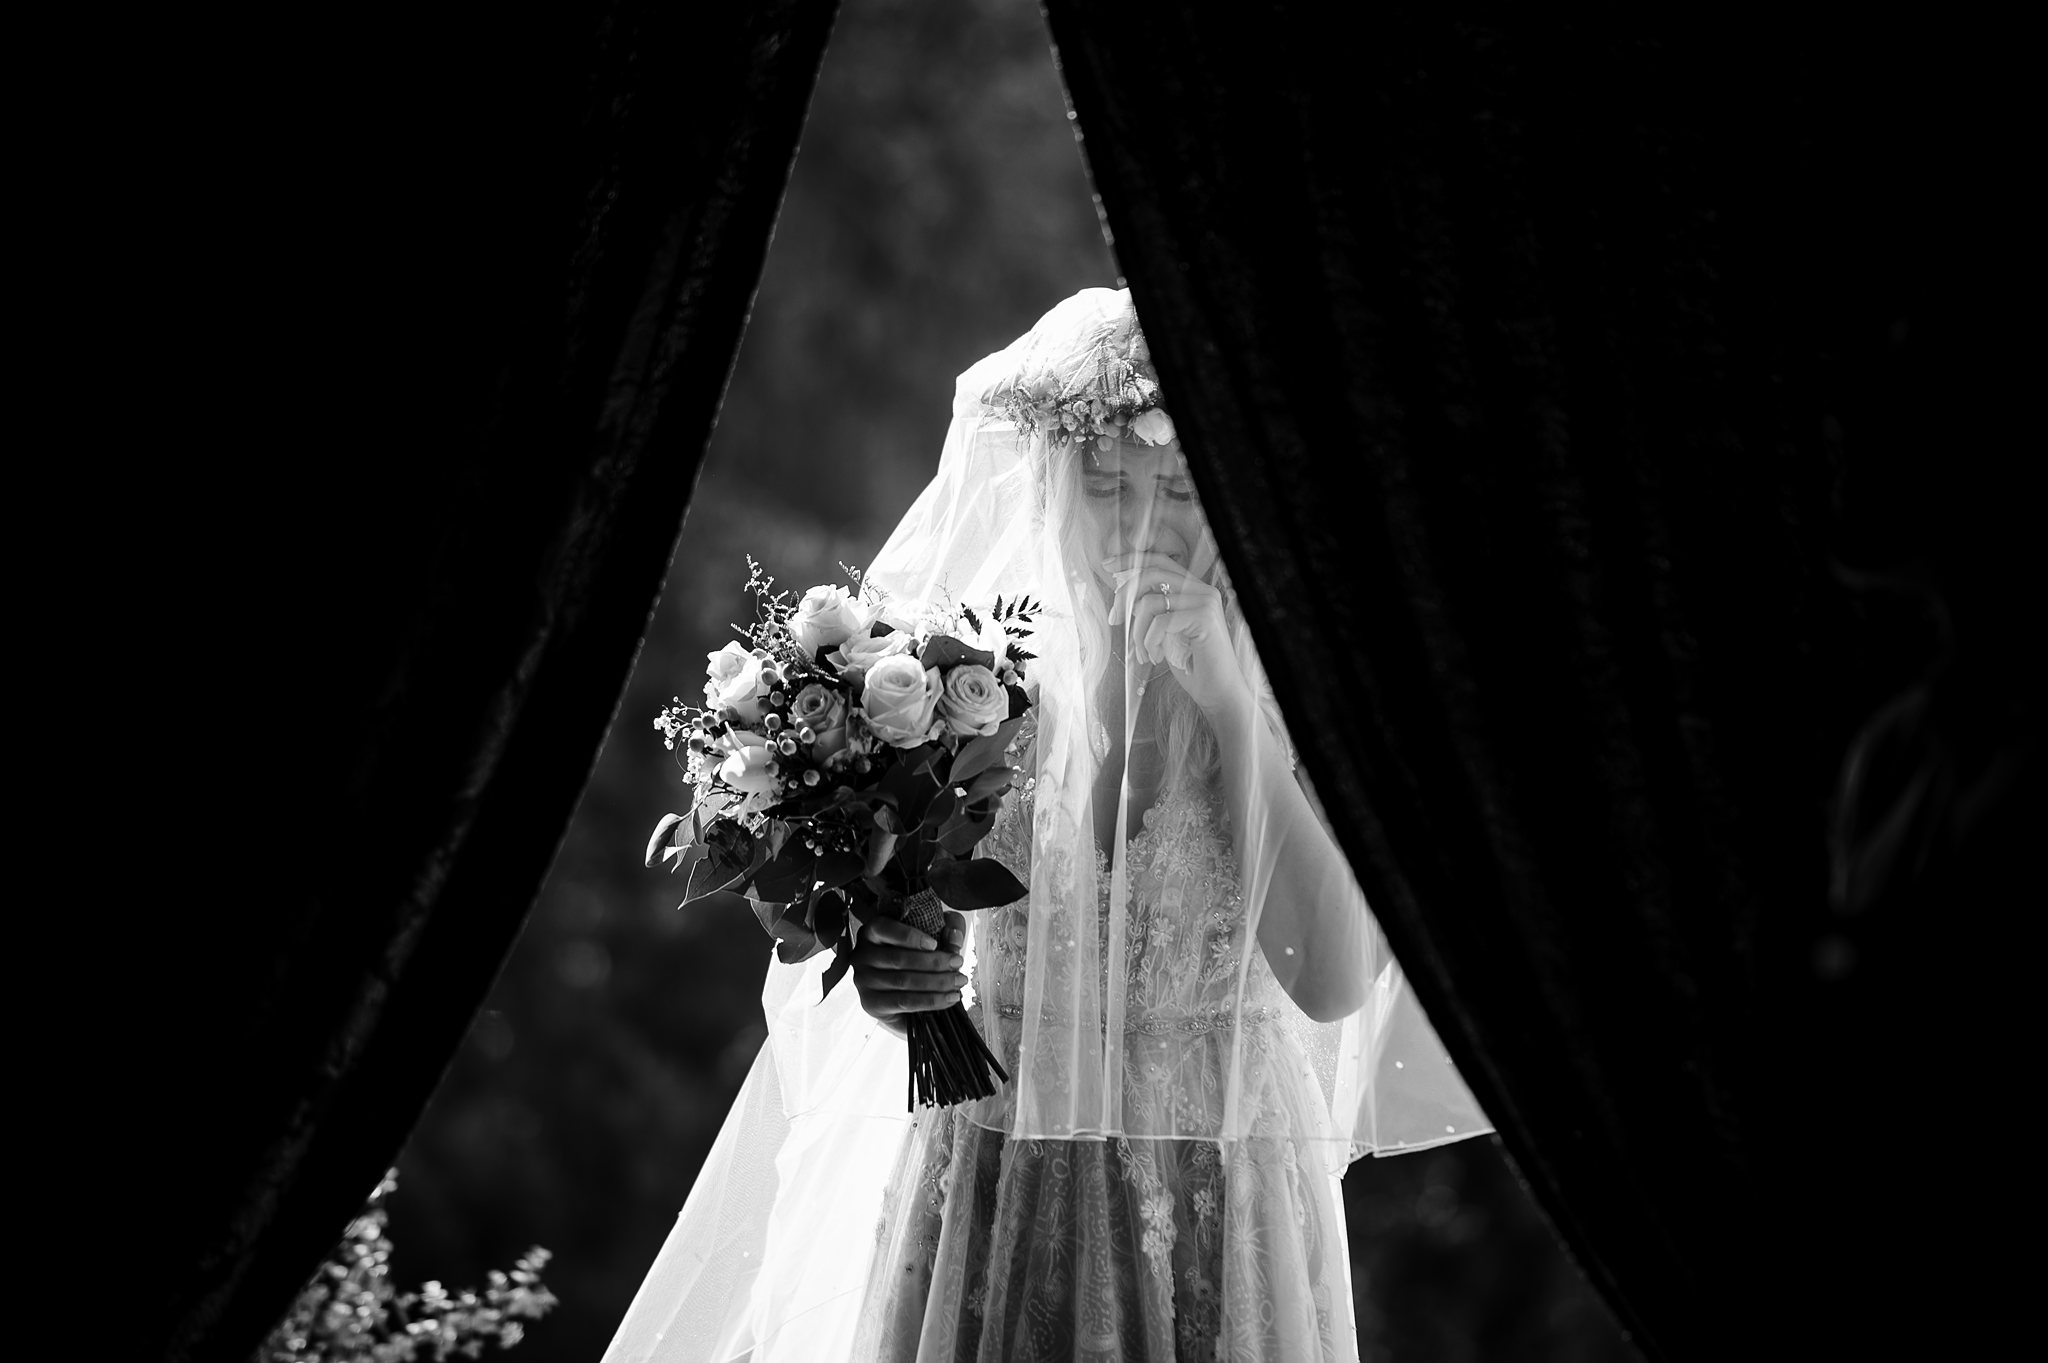 bride-joyfully-seeing-groom-for-the-first-time-photo-by-shane-p-watts-photography